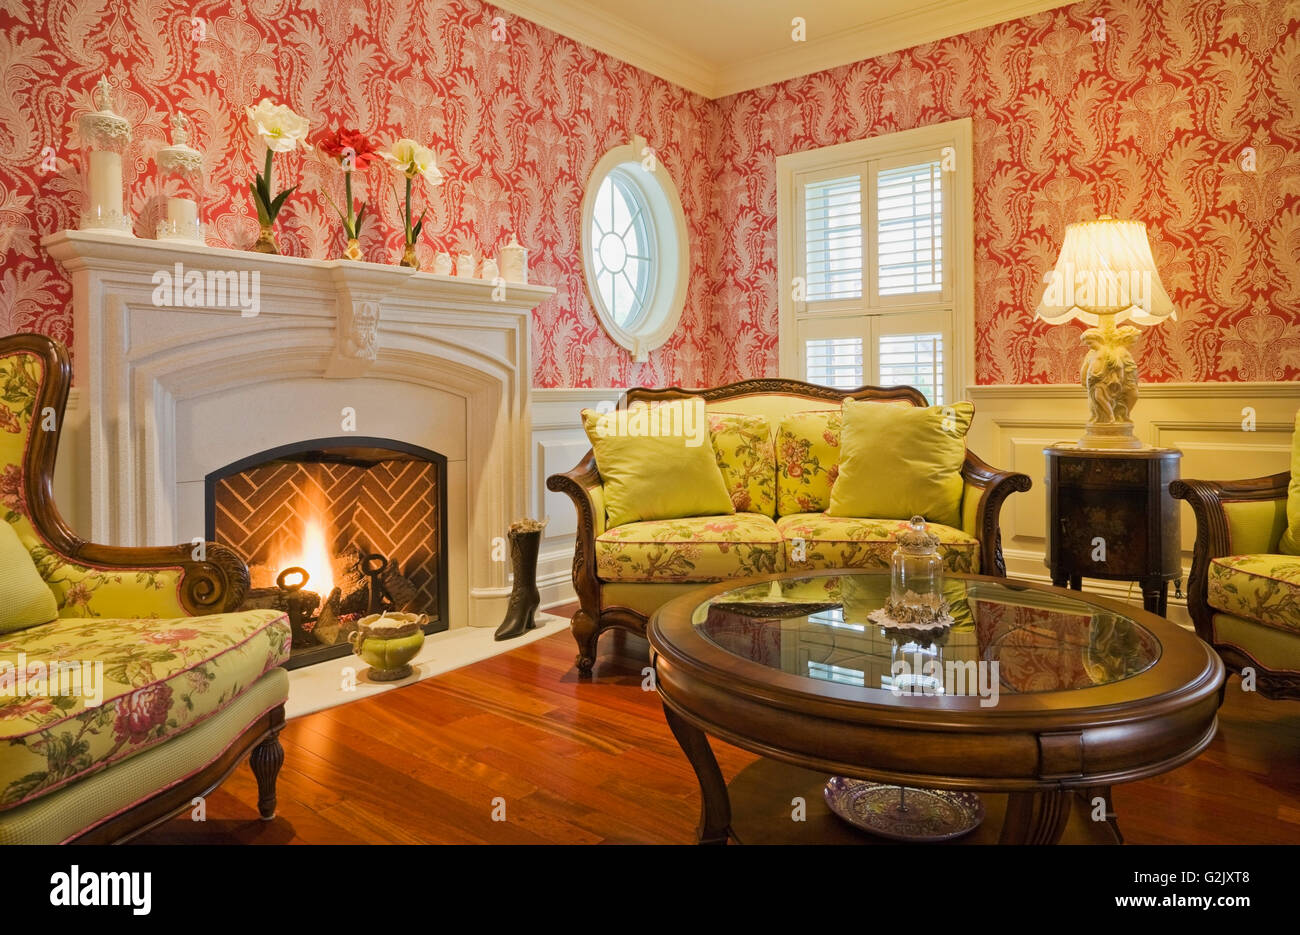 lit gas fireplace yellow flowery upholstered chairs sofa in